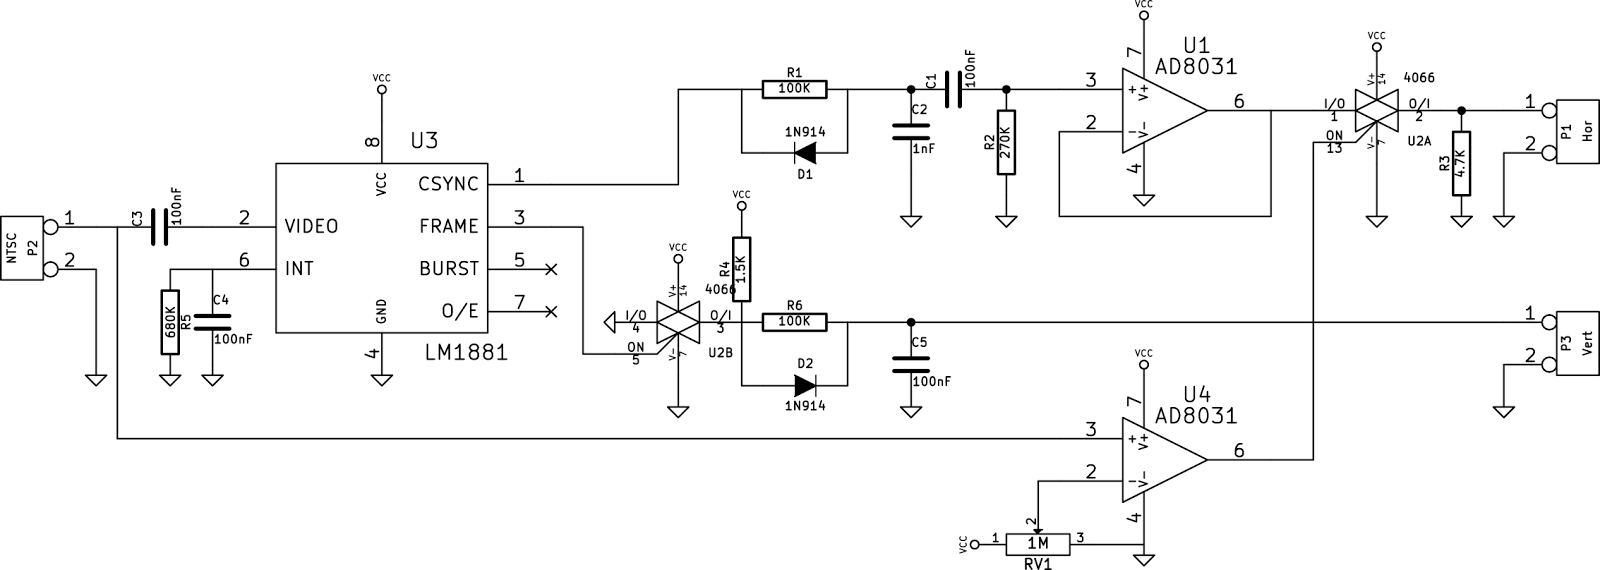 medium resolution of here is the adapter schematic